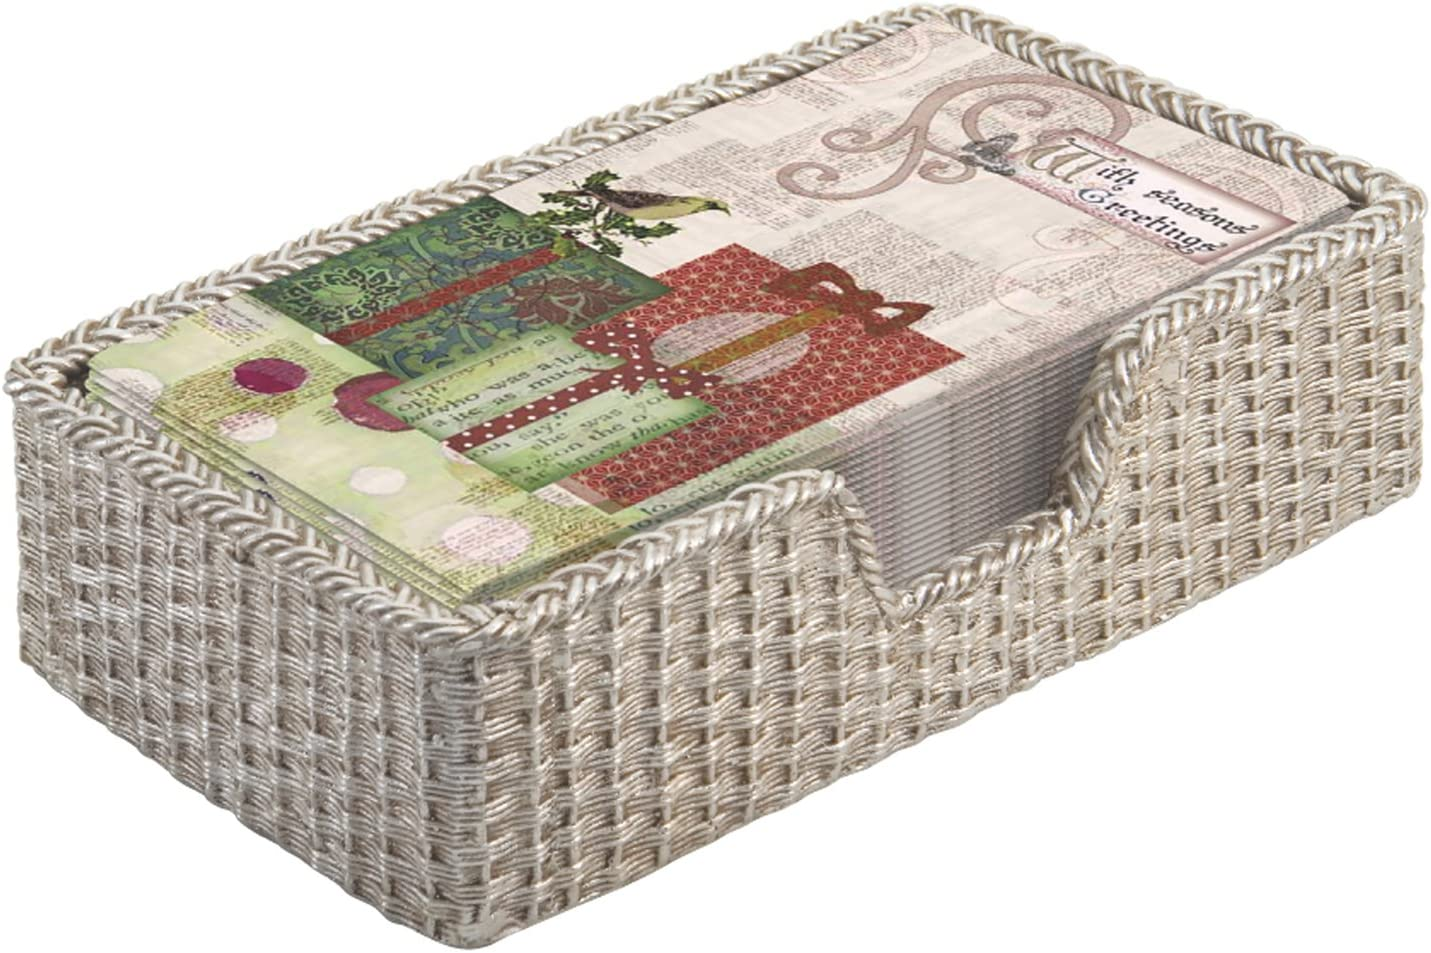 October Hill Guest Towel Caddy, Basket Weave Silver